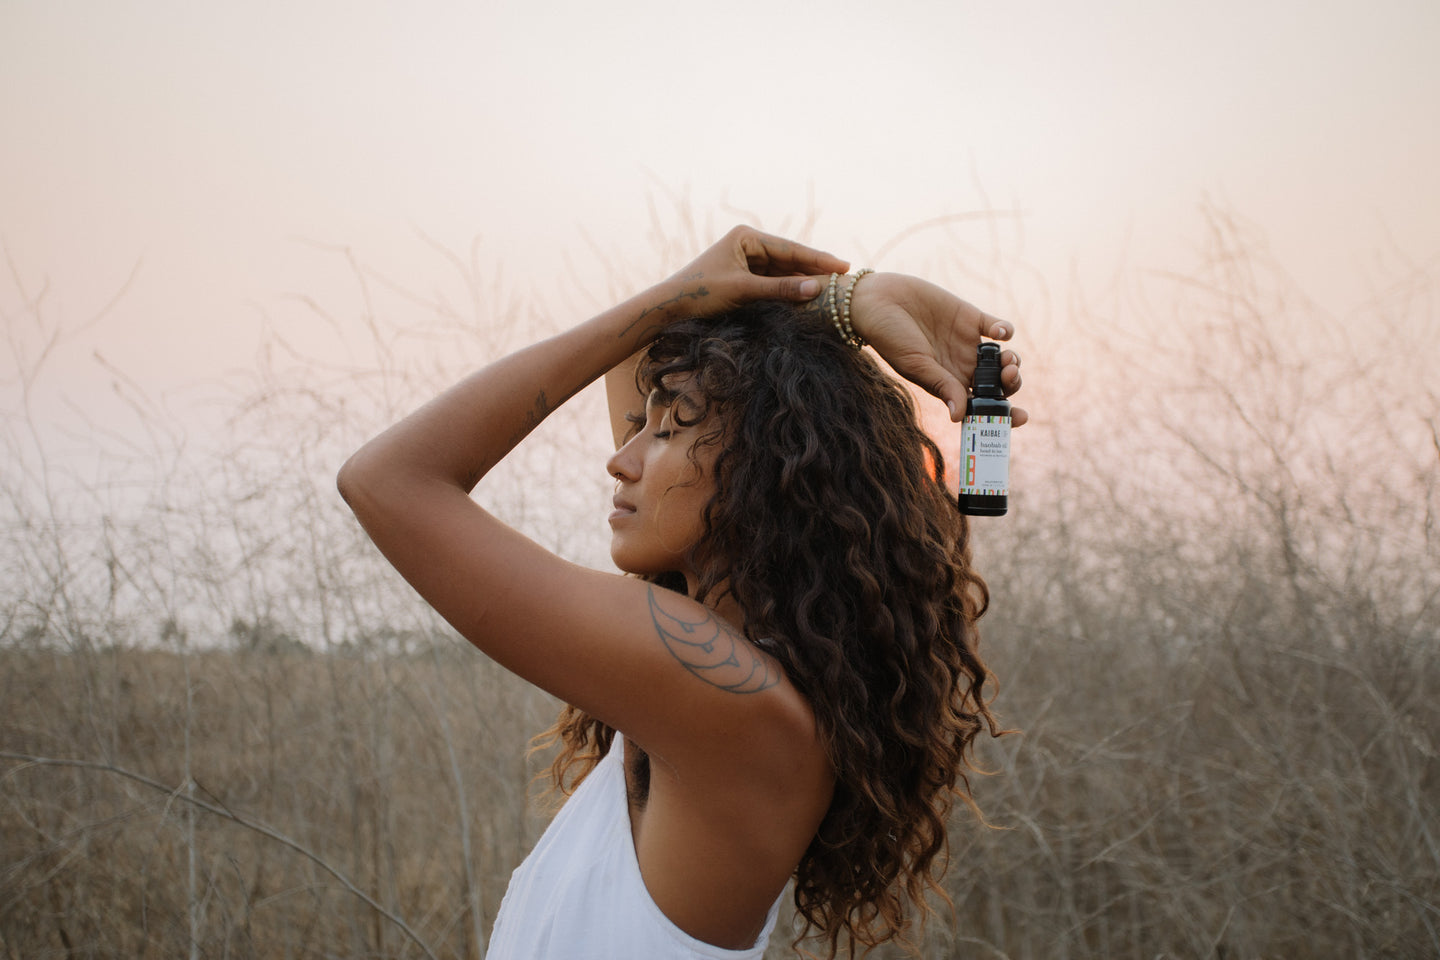 Woman with healthy curly hair stands in the wild and holds a bottle of kaibae pure baobab oil